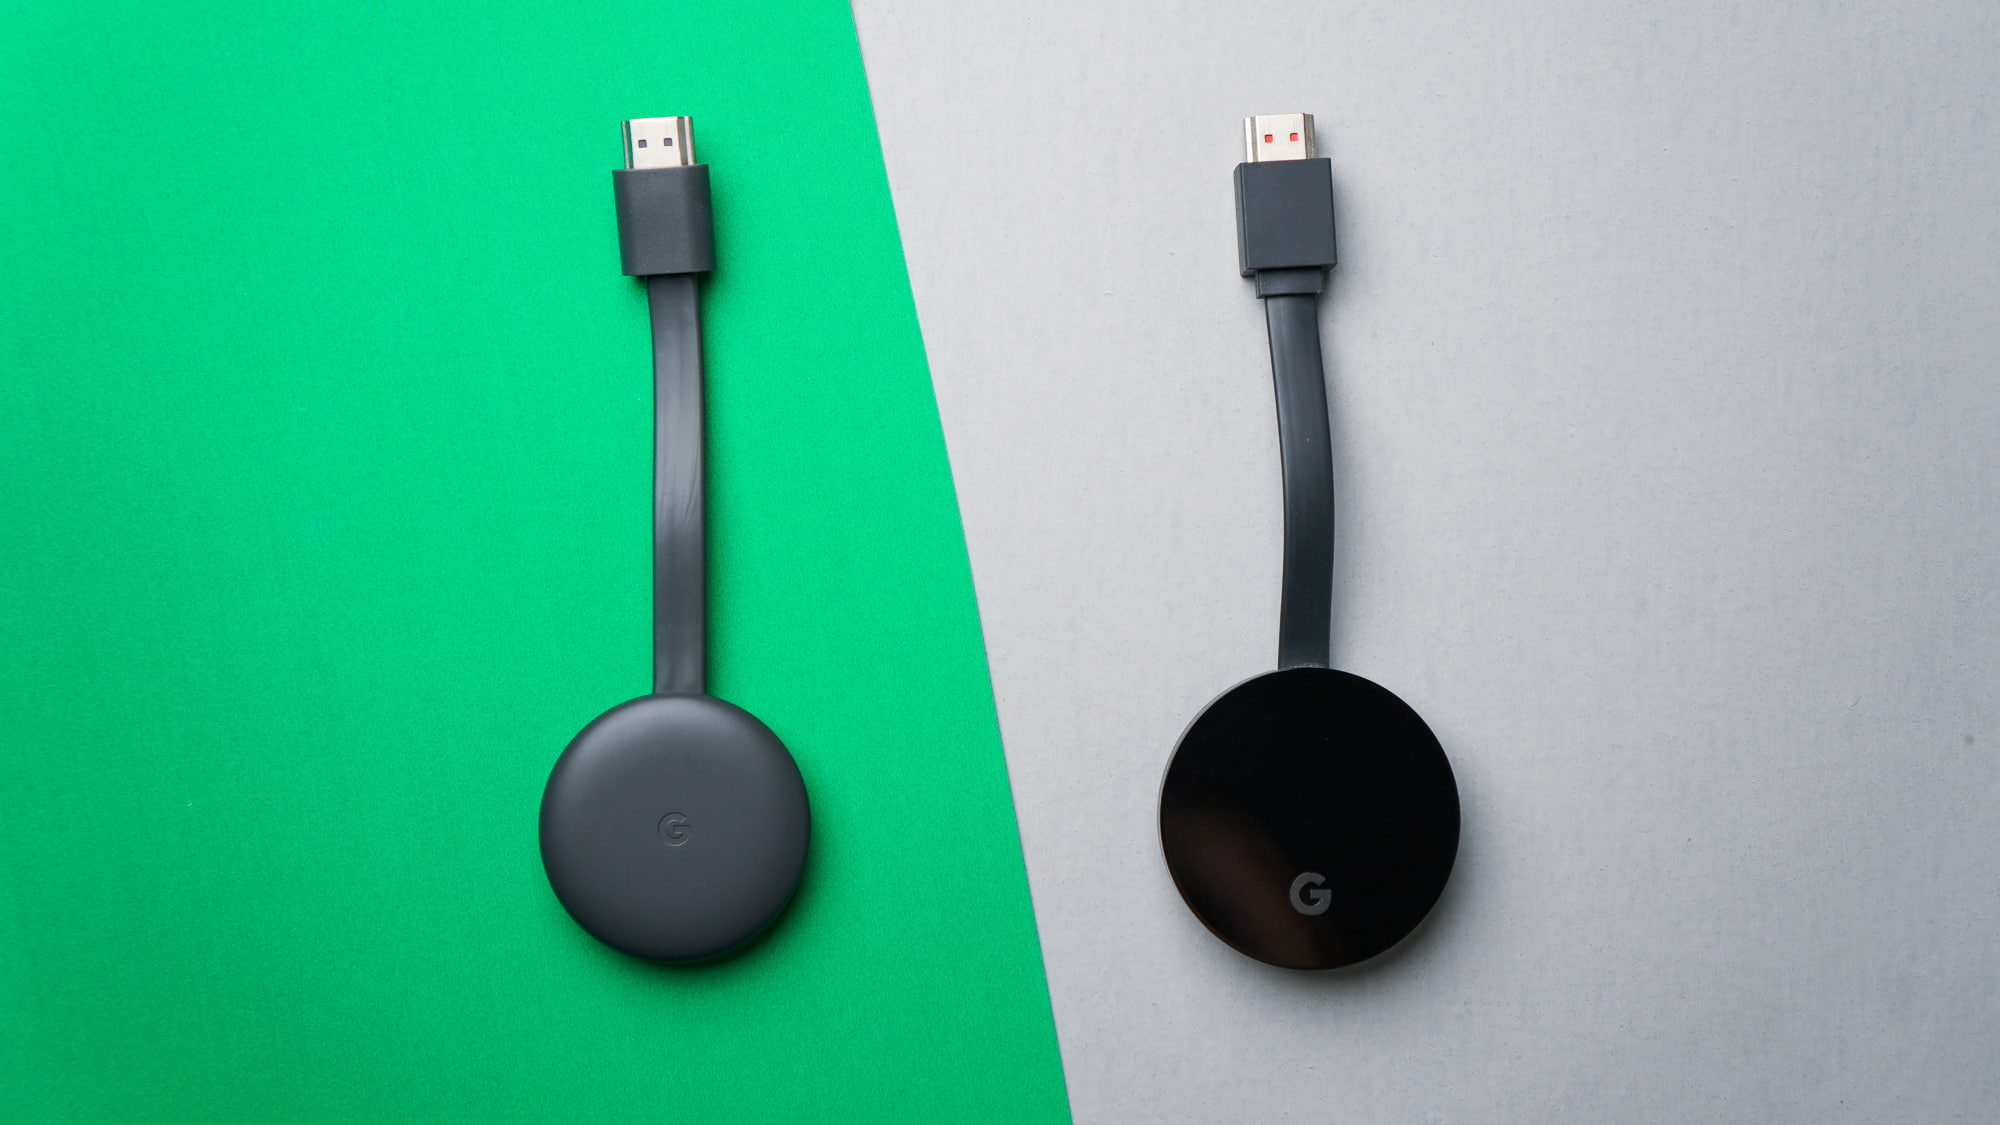 Chromecast Ultra vs. 3rd-gen Chromecast: which one should you buy in 2019?